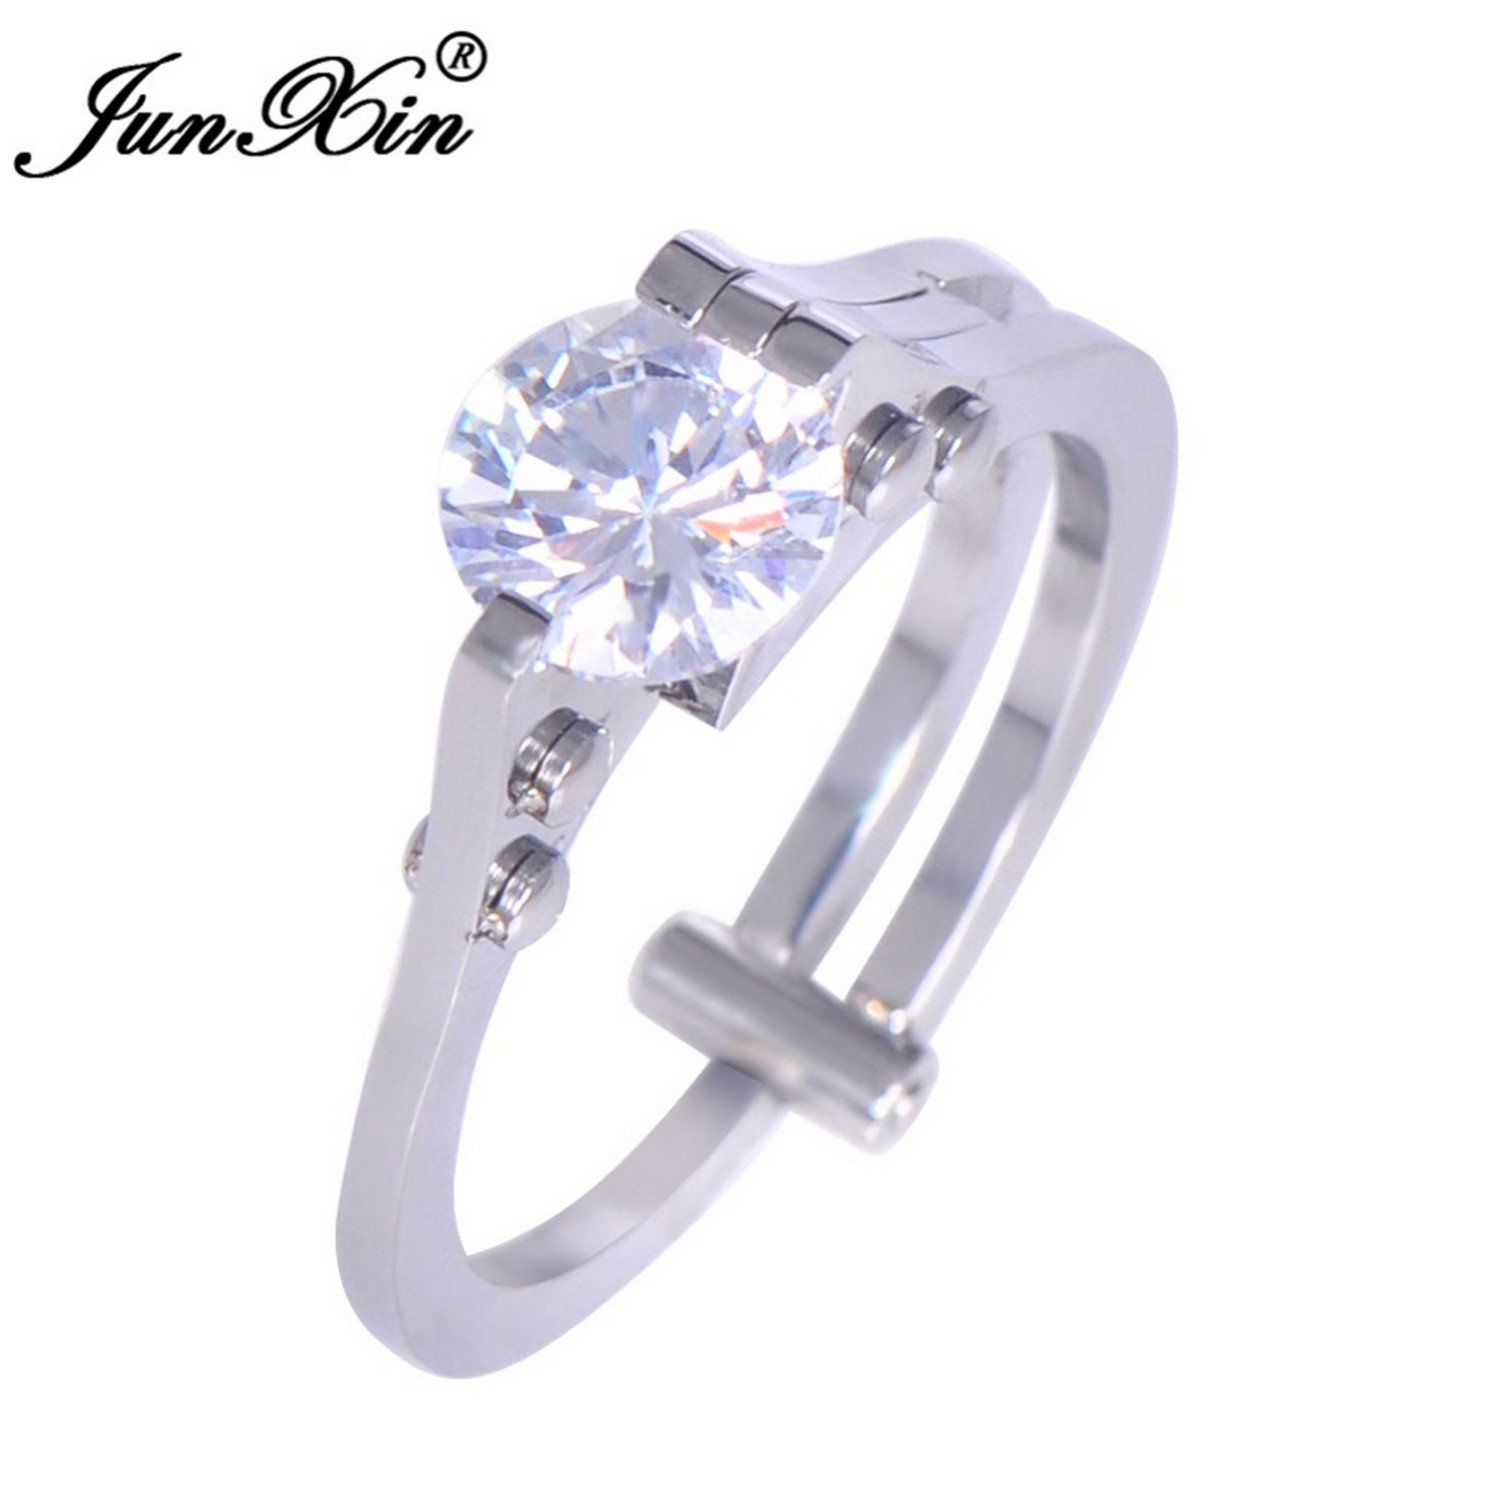 Slyq Jewelry Vintage Male Female Round AAA Zircon Ring 316L Stainless Steel Ring Wedding Rings for Men and Women Fashion Jewelry